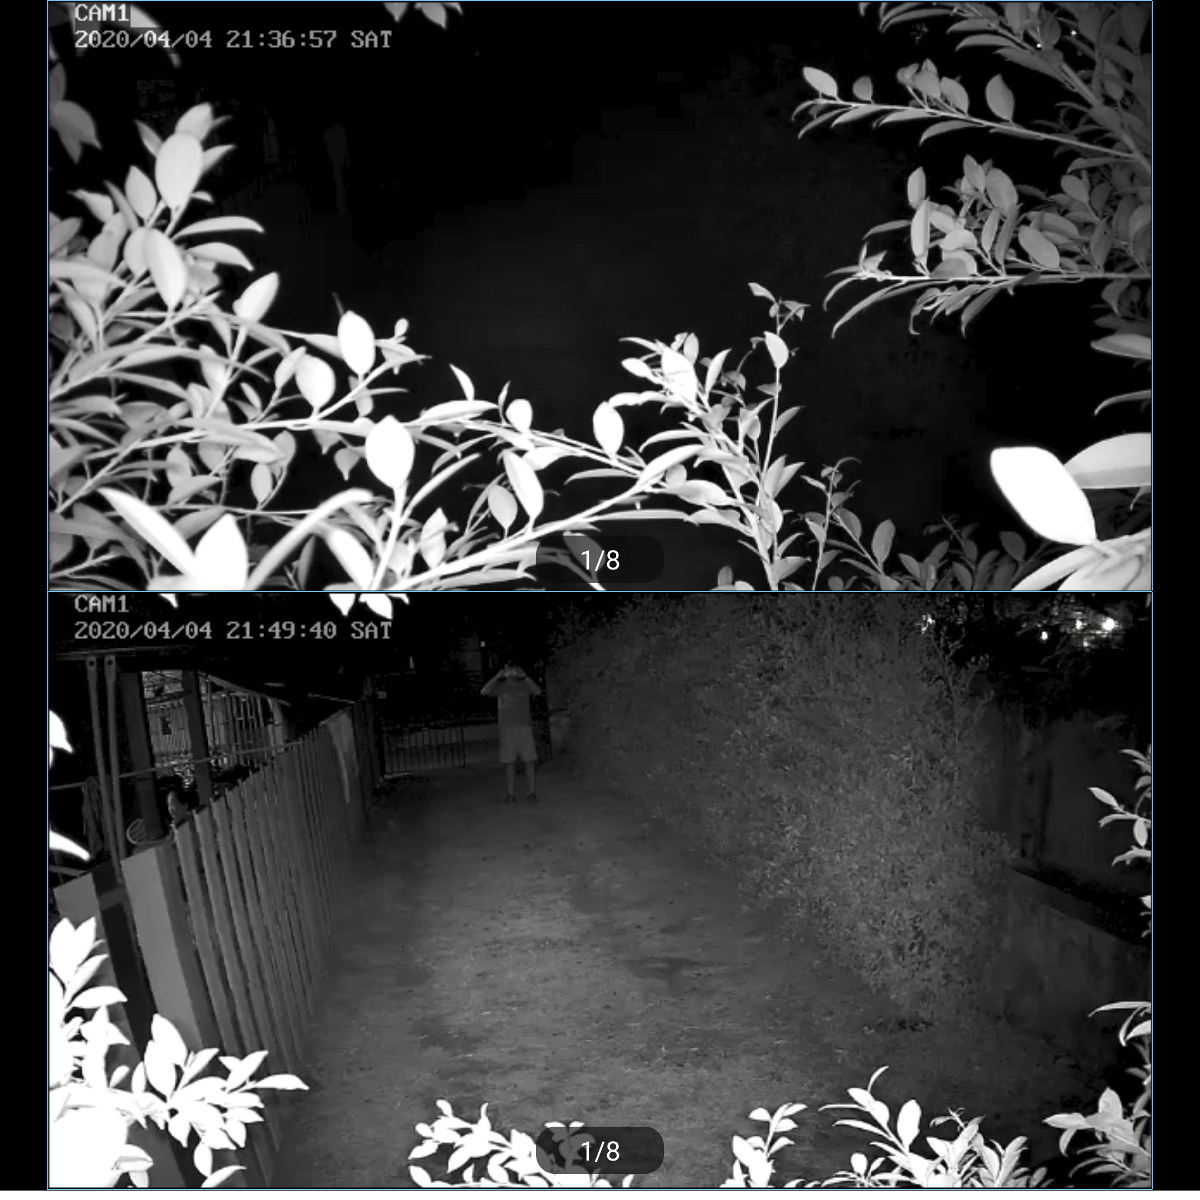 HeimVision Camera Night Vision Leaves